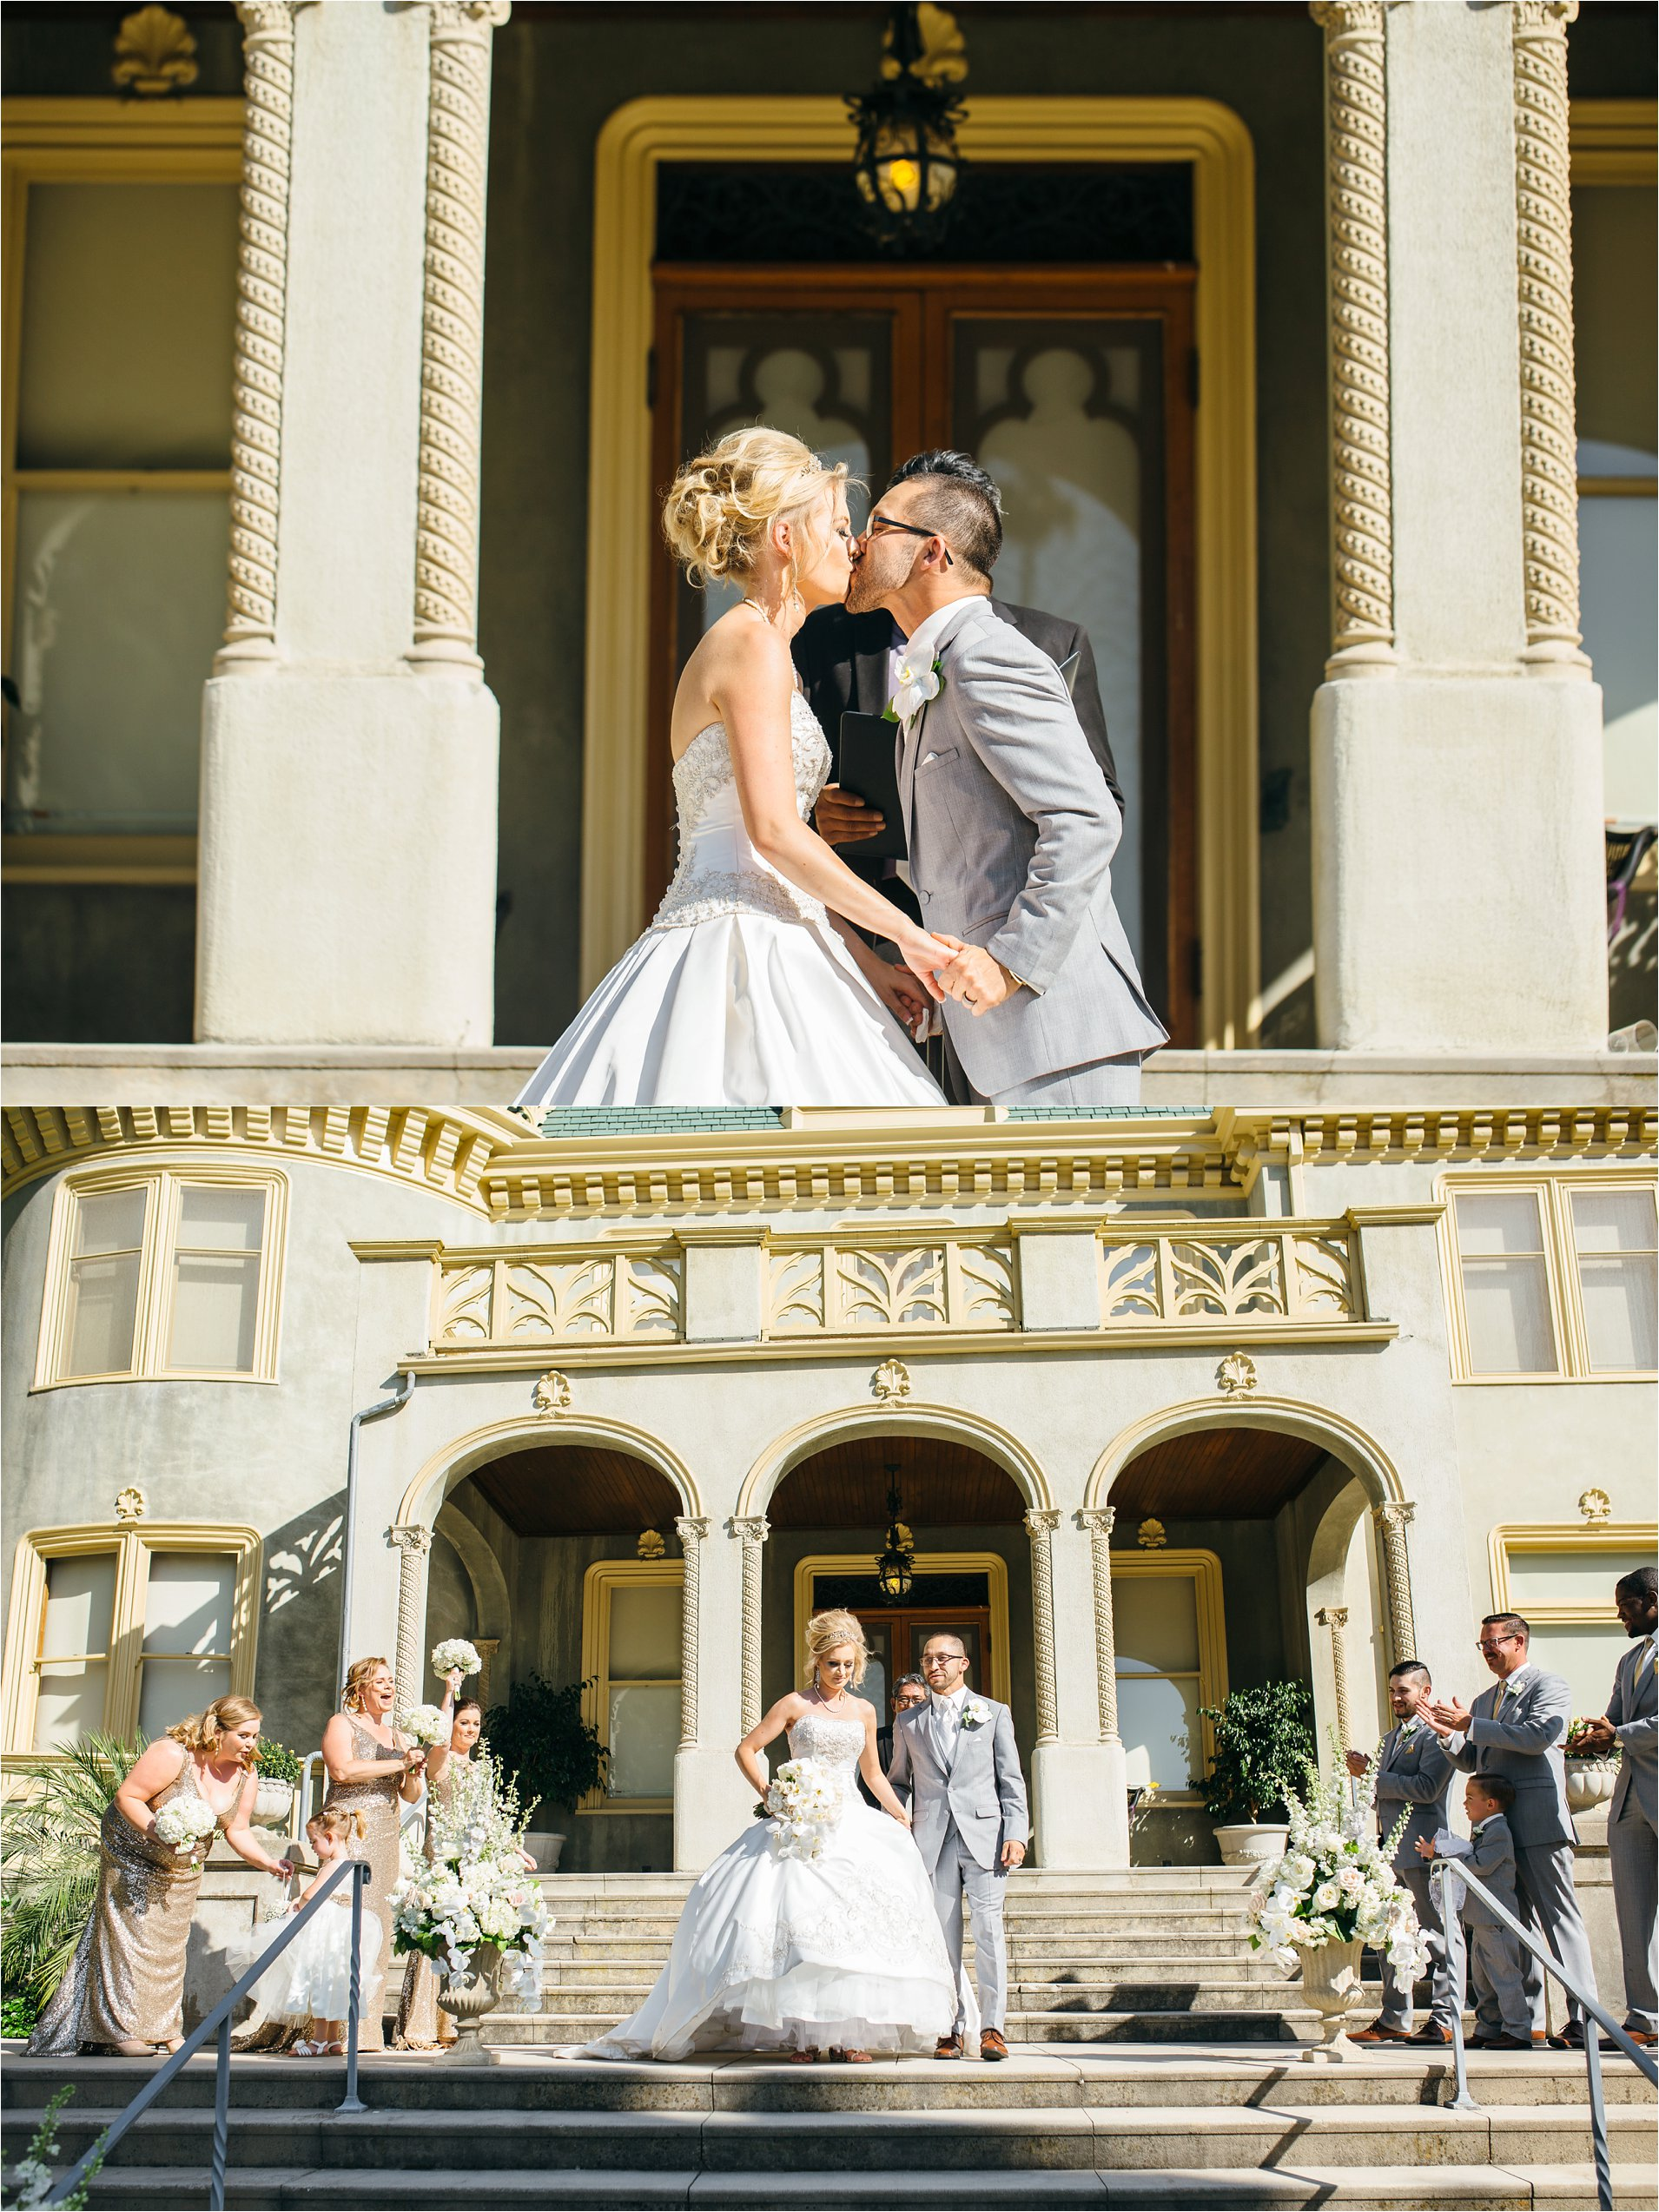 Kimberly Crest Wedding Ceremony Photos